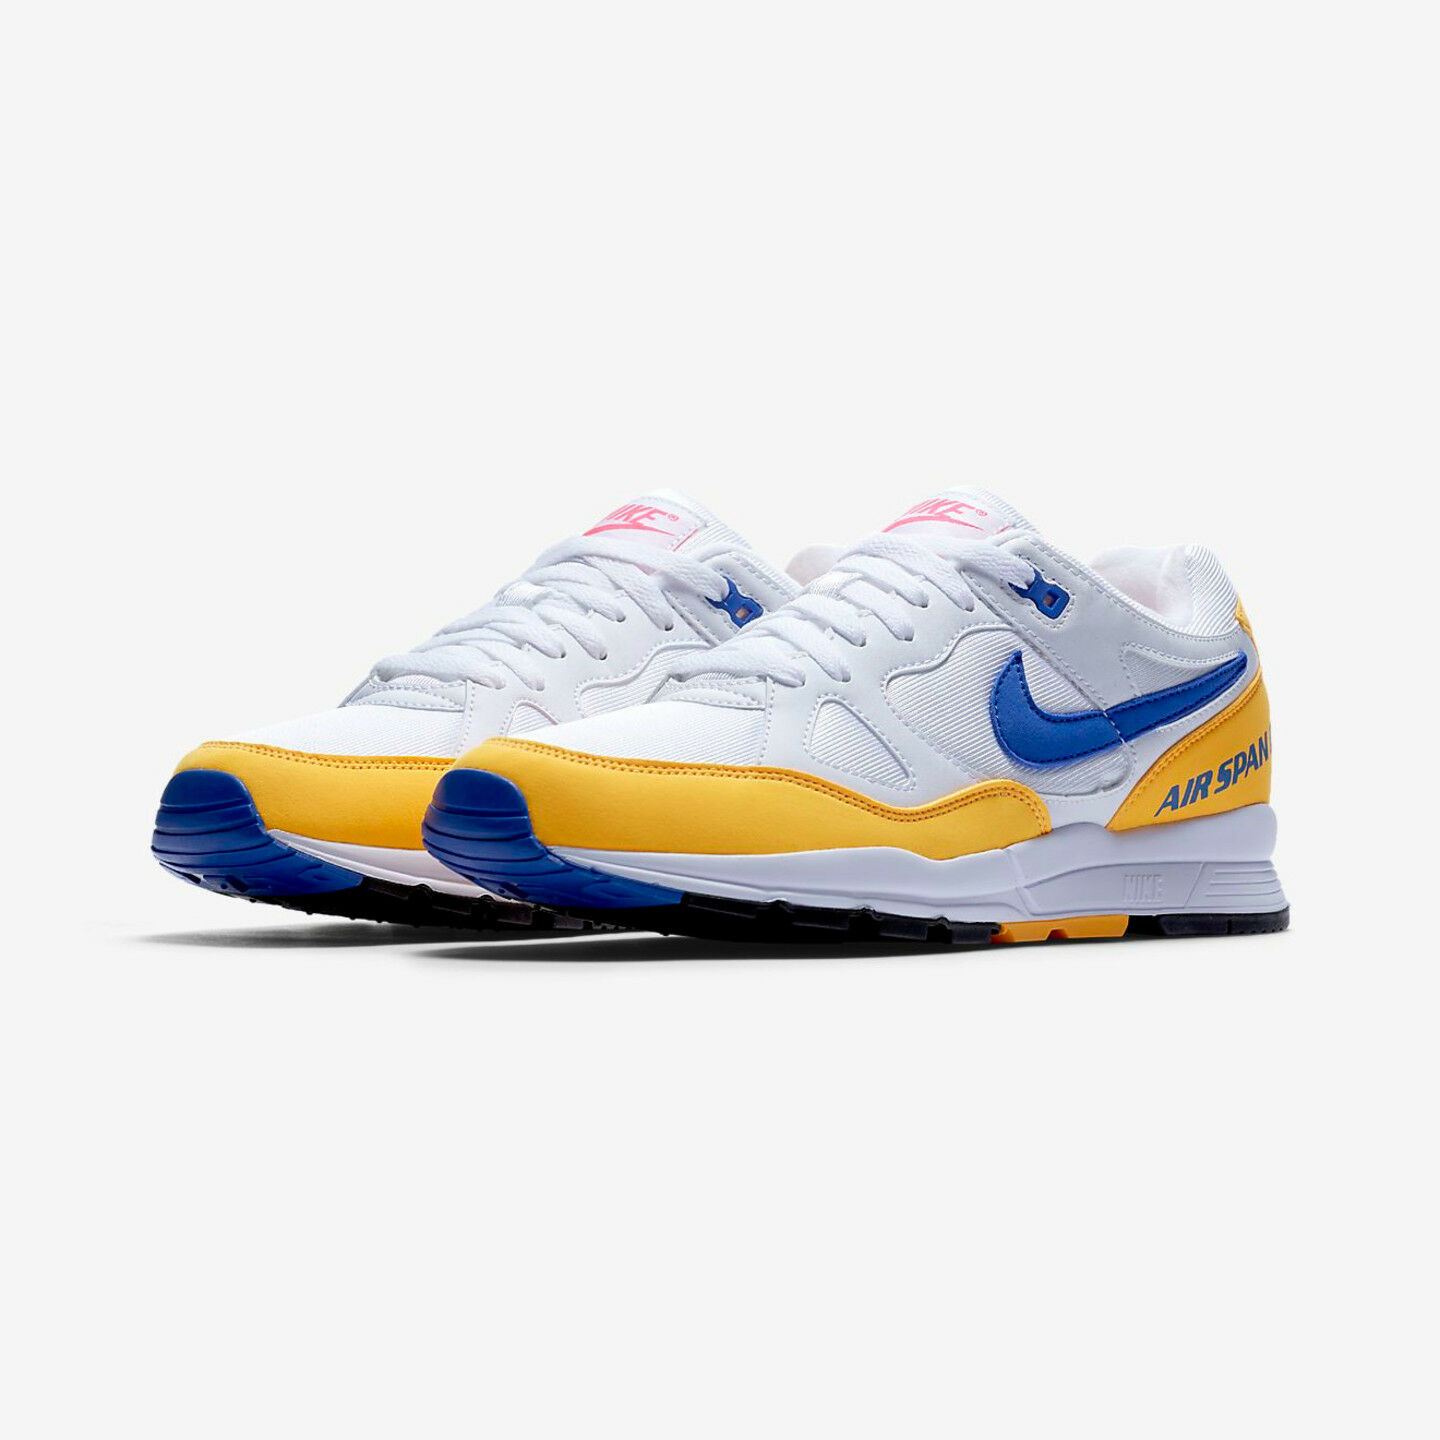 TOP NIKE AIR SPAN II 43 - 44,5  Weiß HYPER ROYAL  AH8047 103 NEWAUSVERKAUFT